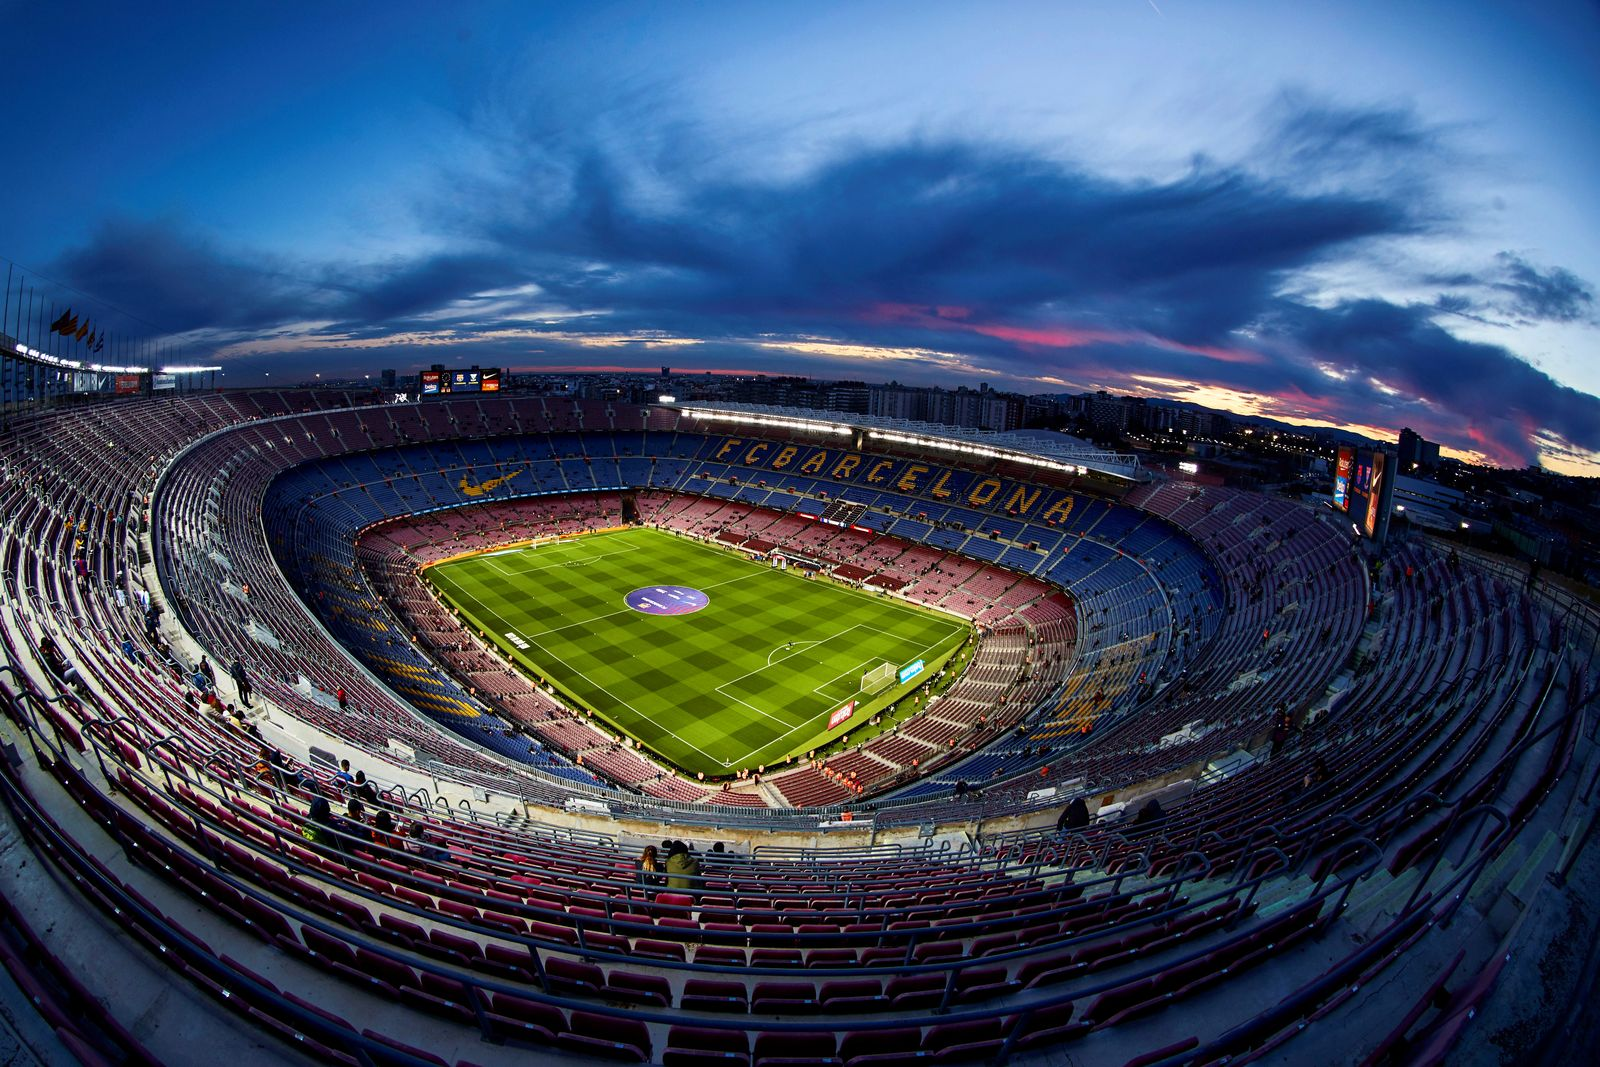 Champions League match in Barcelona to be played behind closed doors